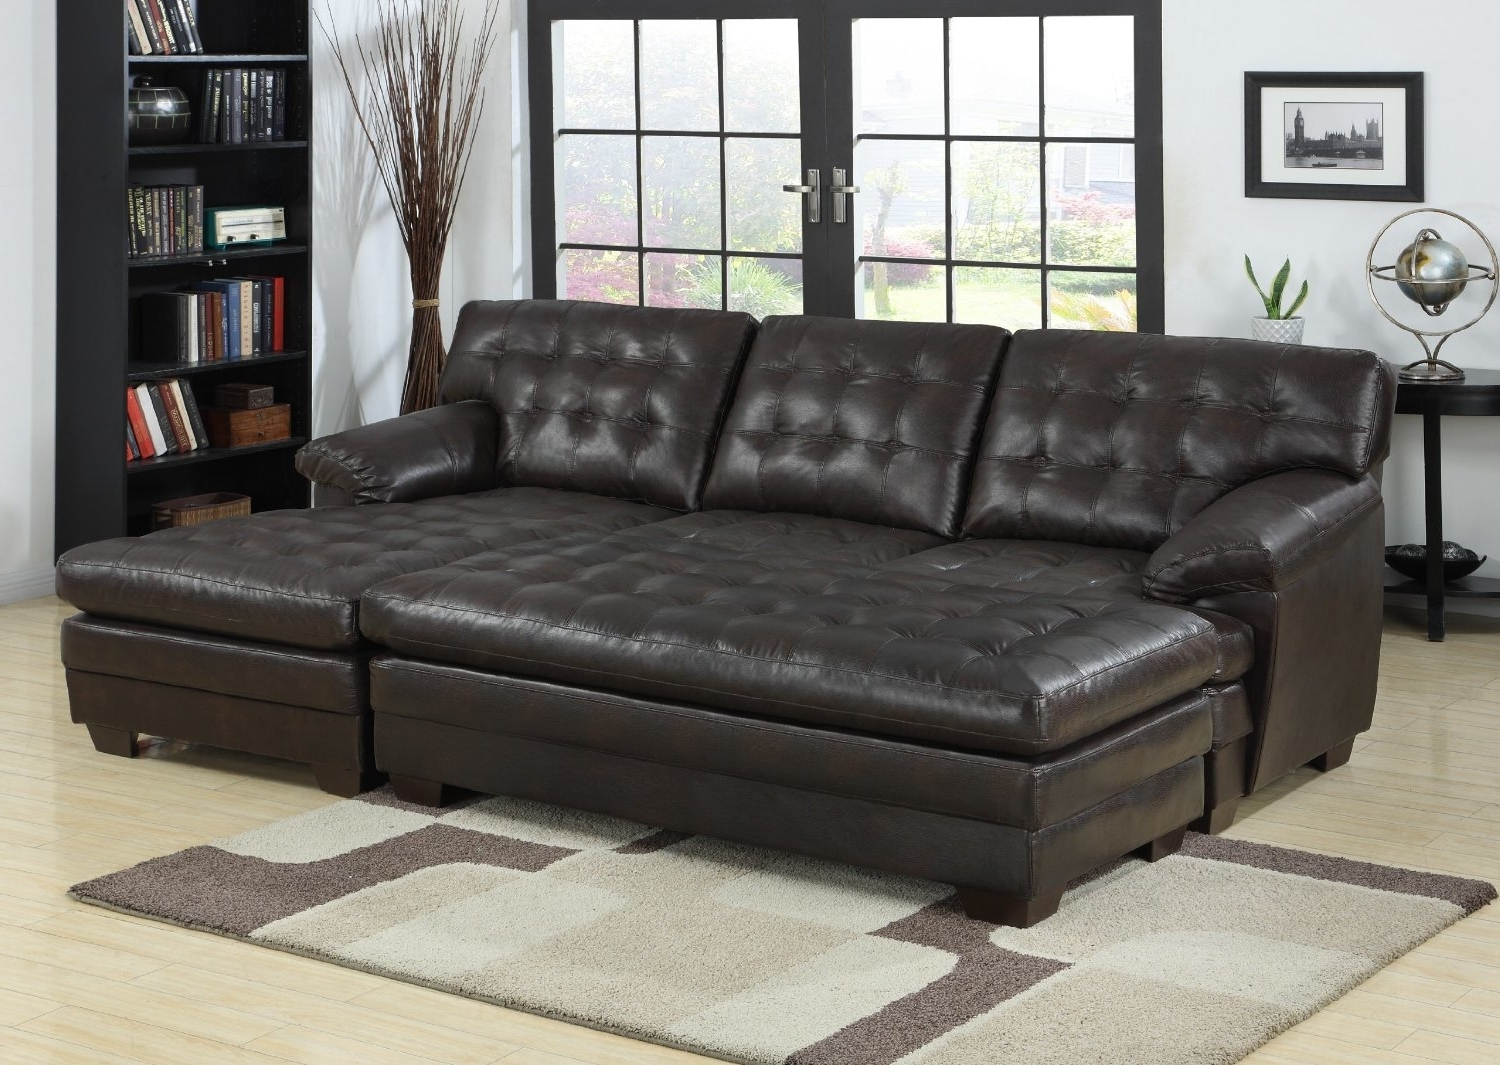 Most Up To Date Luxury Double Chaise Lounge Sofa 92 About Remodel Sofas And With Chaise Lounge Sleeper Sofas (View 12 of 15)